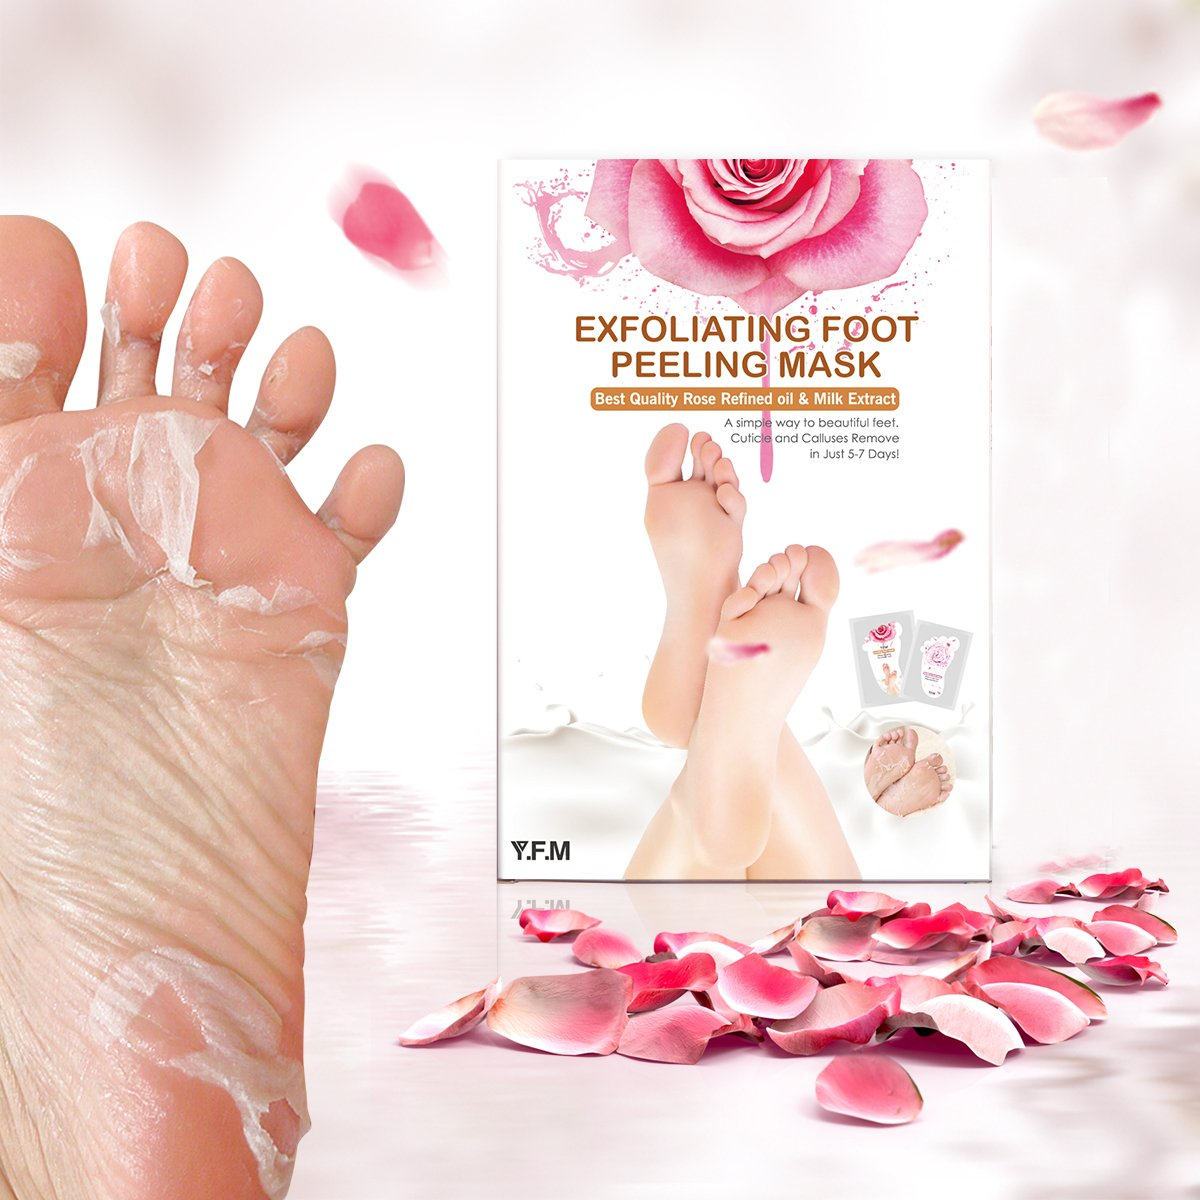 Rose Foot Mask, LuckyFine 1 Peeling Mask + 1 Nutritious Mask, Exfoliating Soft Feet Peel Mask, Remove Calluses & Dead Skin Cells, Rebirth of Soft Foot, Completely within 4-7 days for Gift